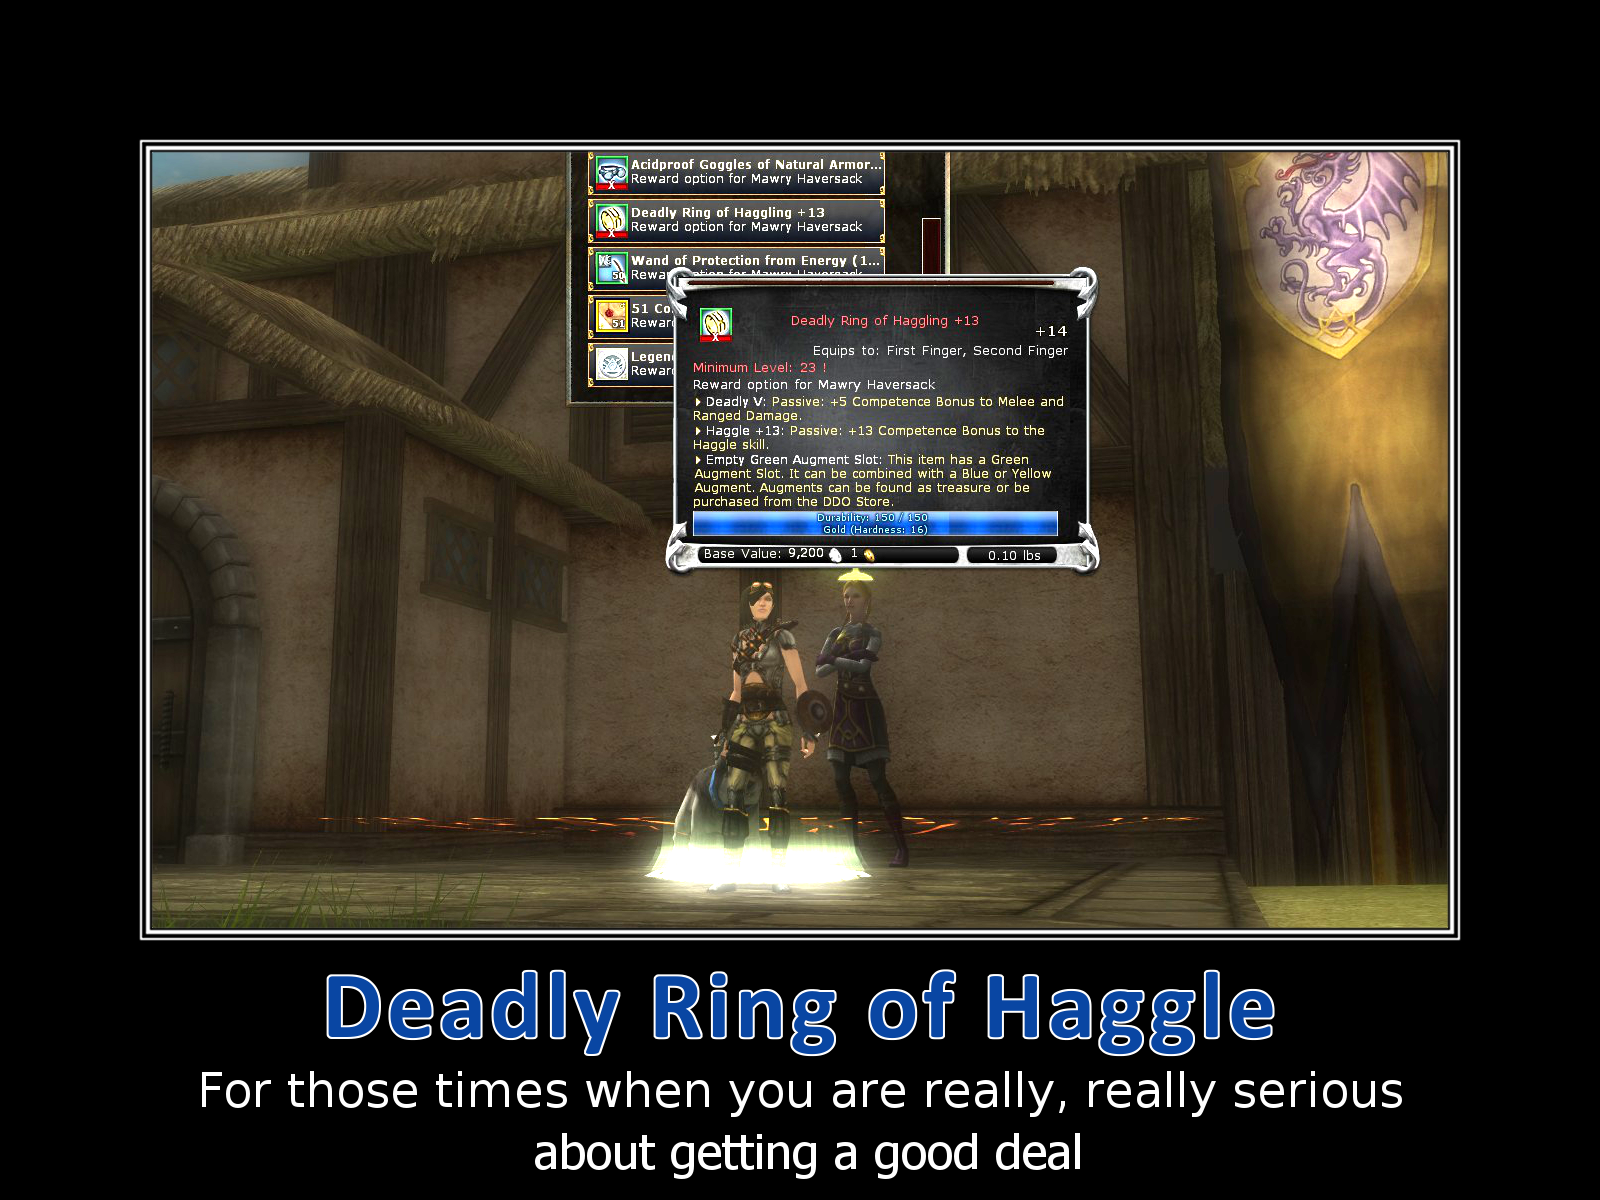 Deadly Ring of Haggle